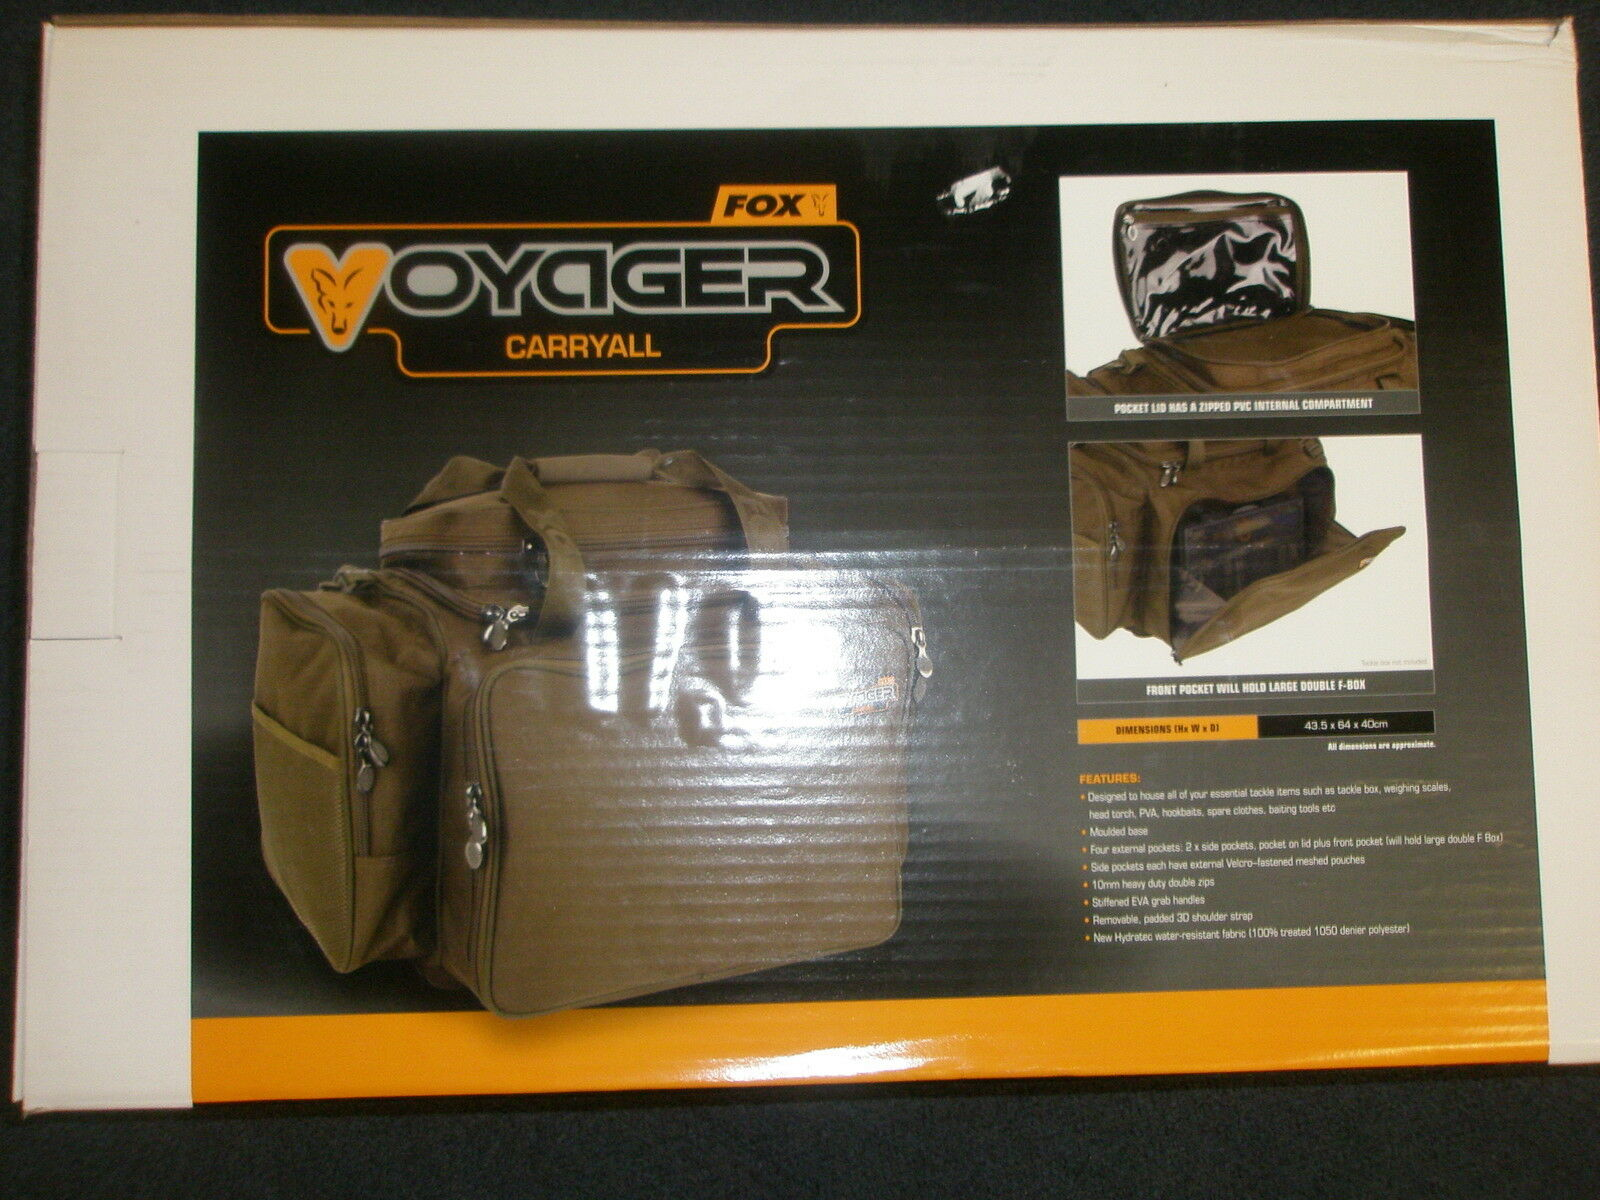 Fox Voyager Large Carryall CLU337 Carp fishing tackle